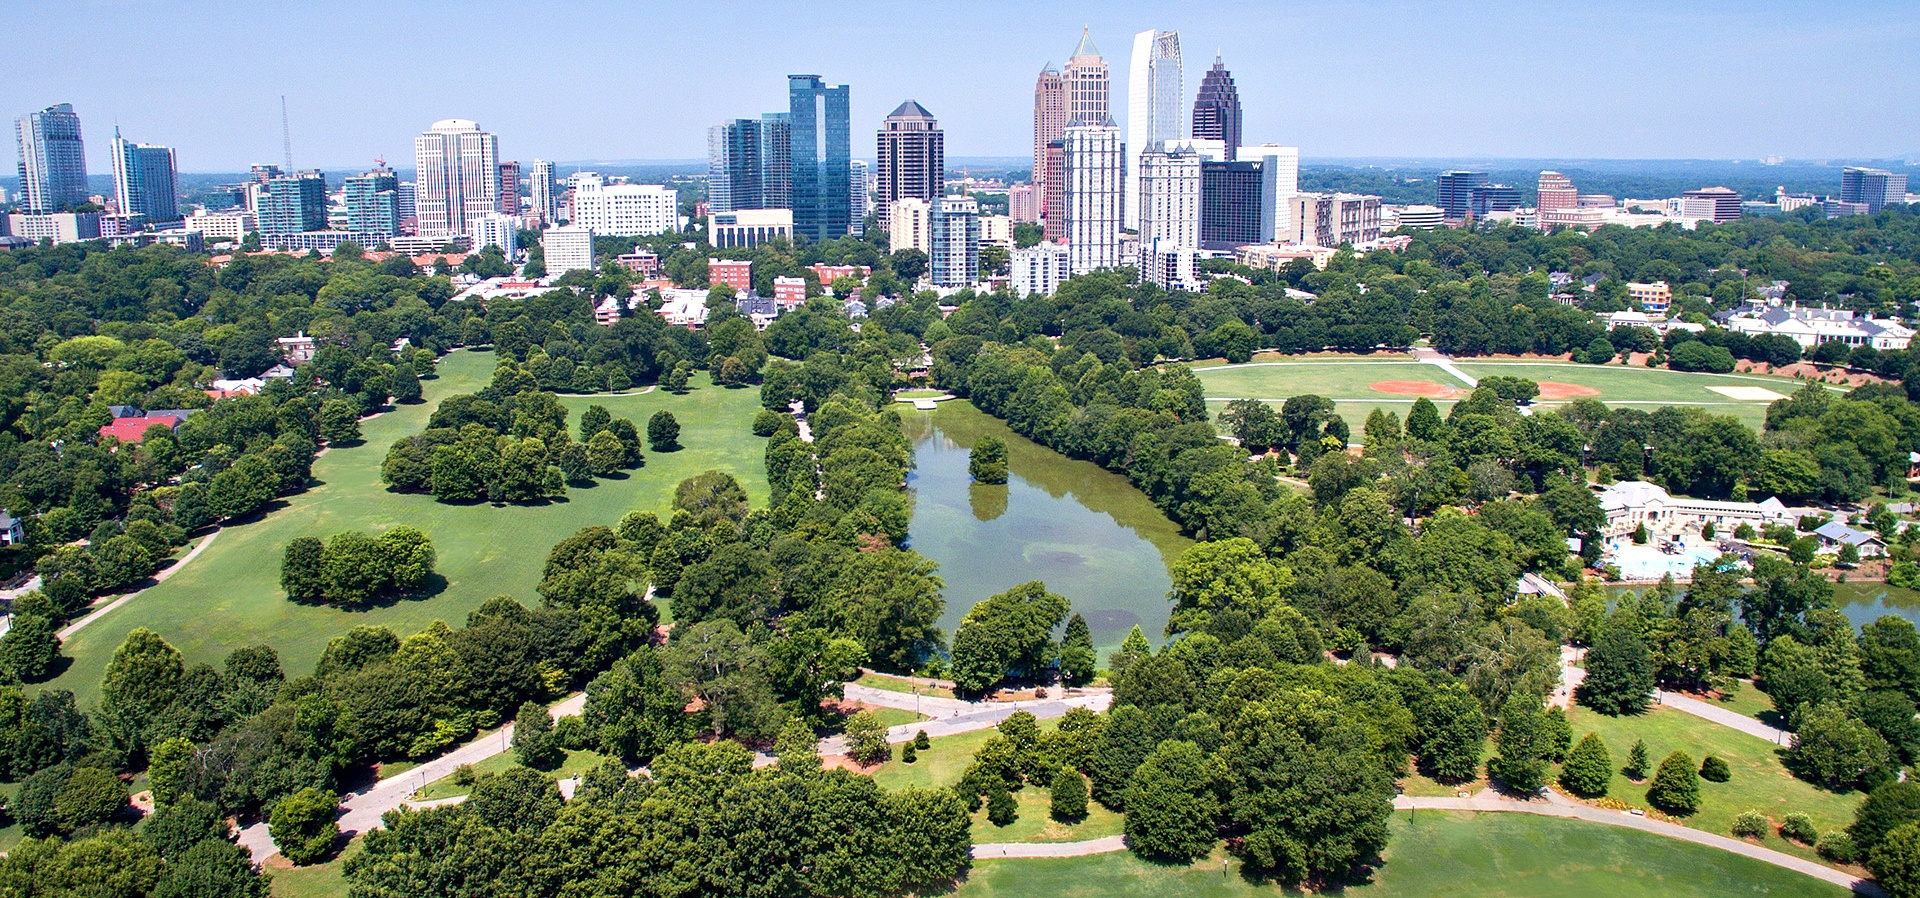 Best Free Things to Do in Atlanta with kids